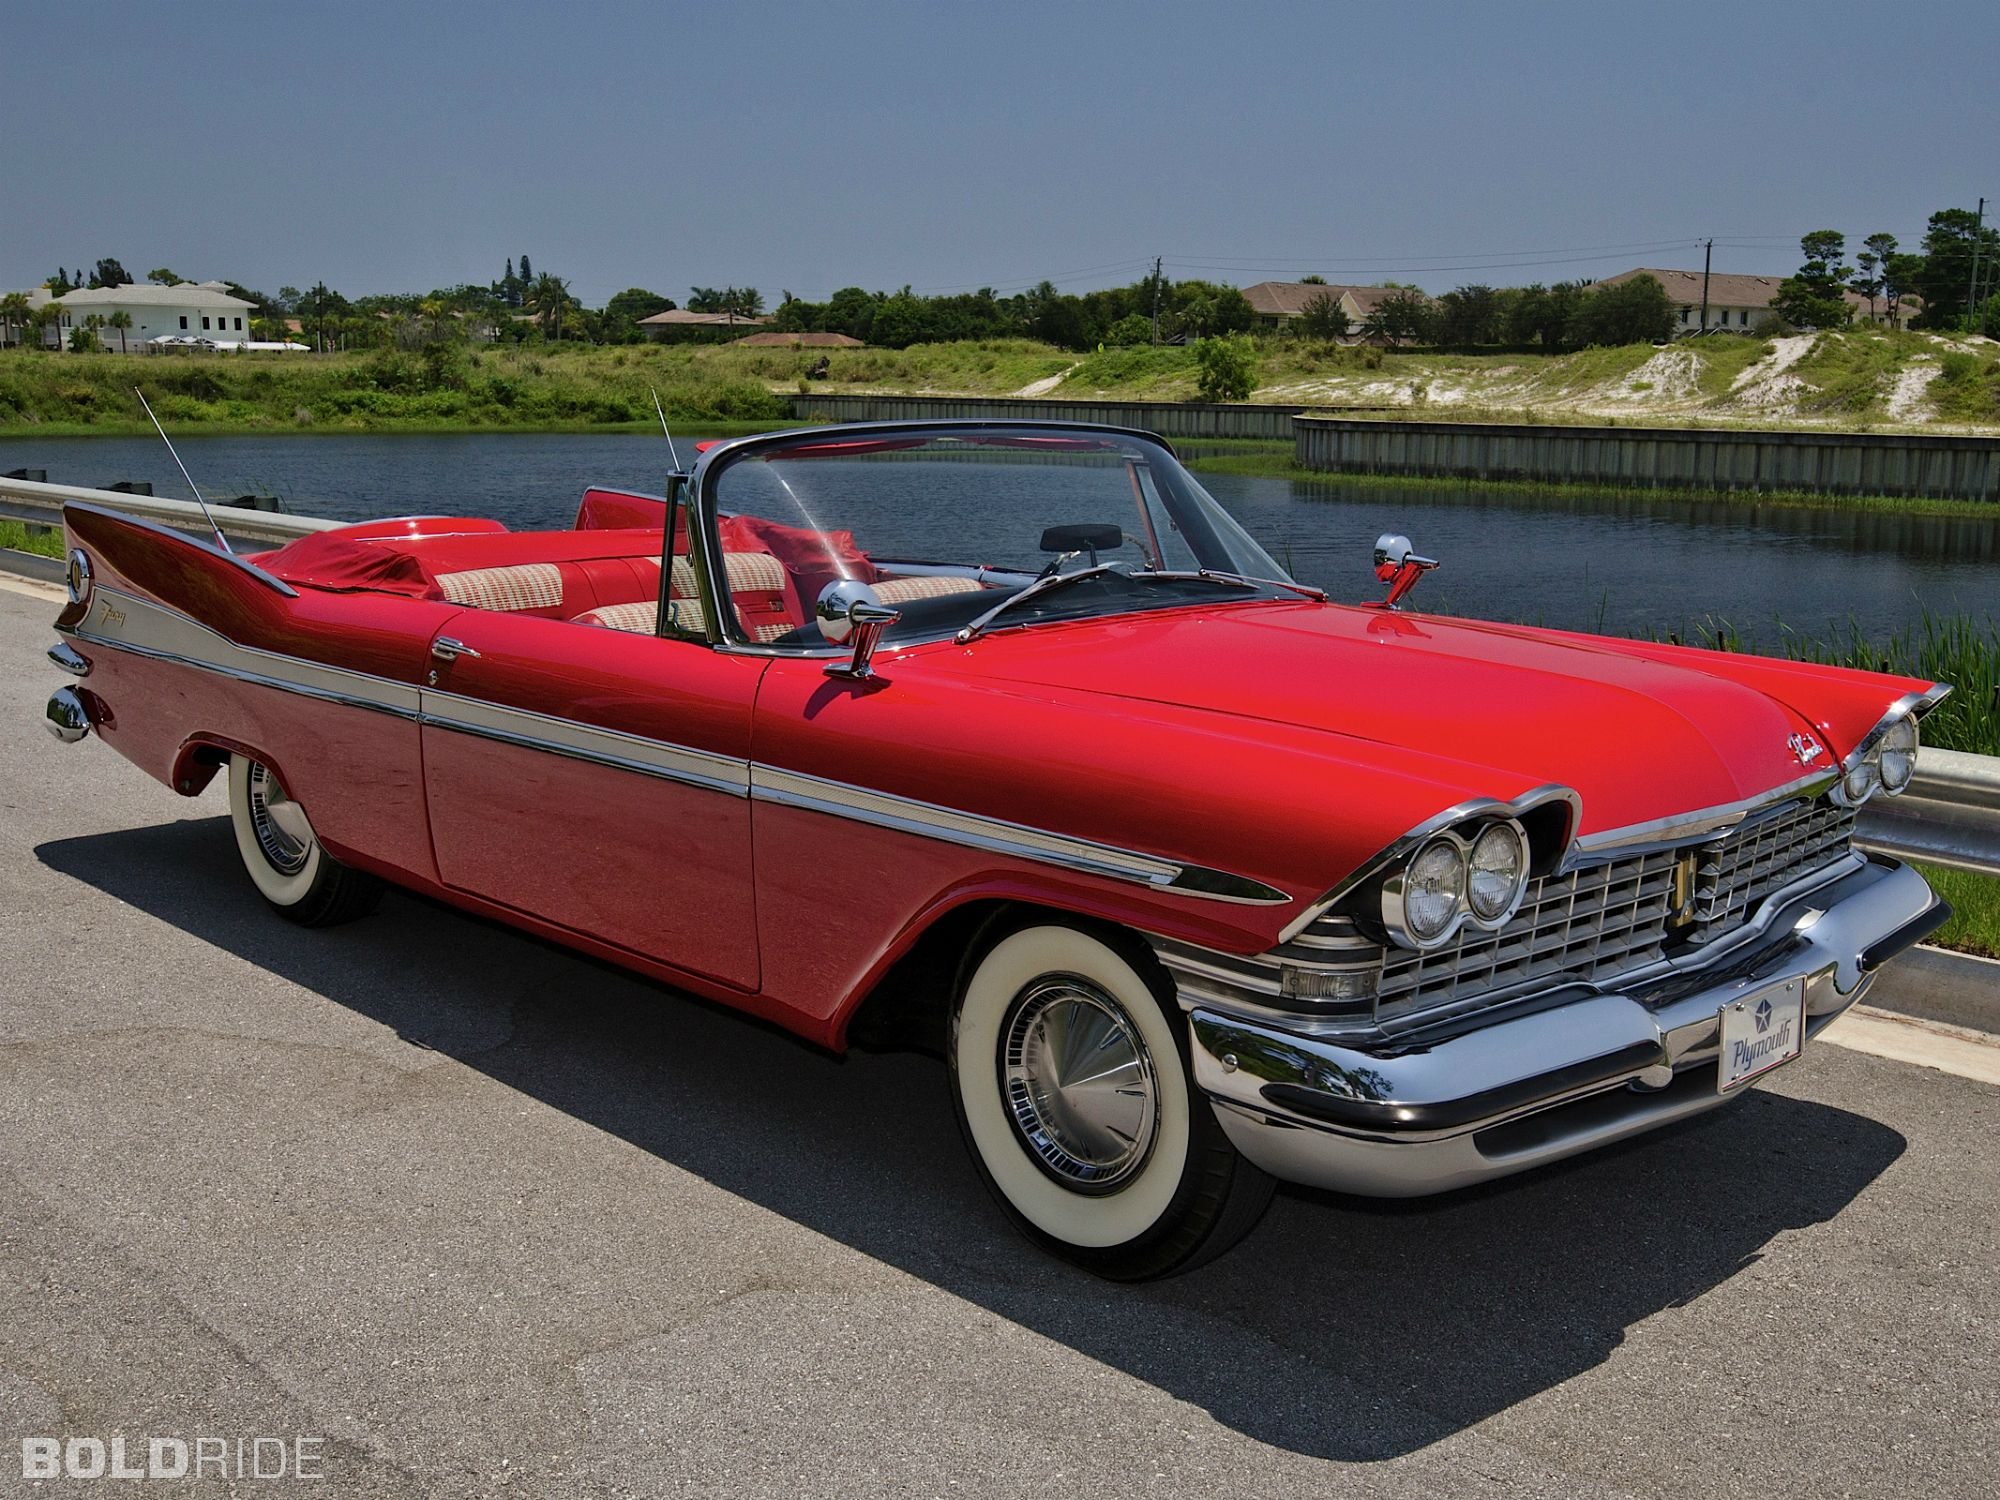 1955 dodge royal lancer convertible cream black fvr cars -  Flame Red 1959 Plymouth Sport Fury Convertible For Sale At Mecum Auctions